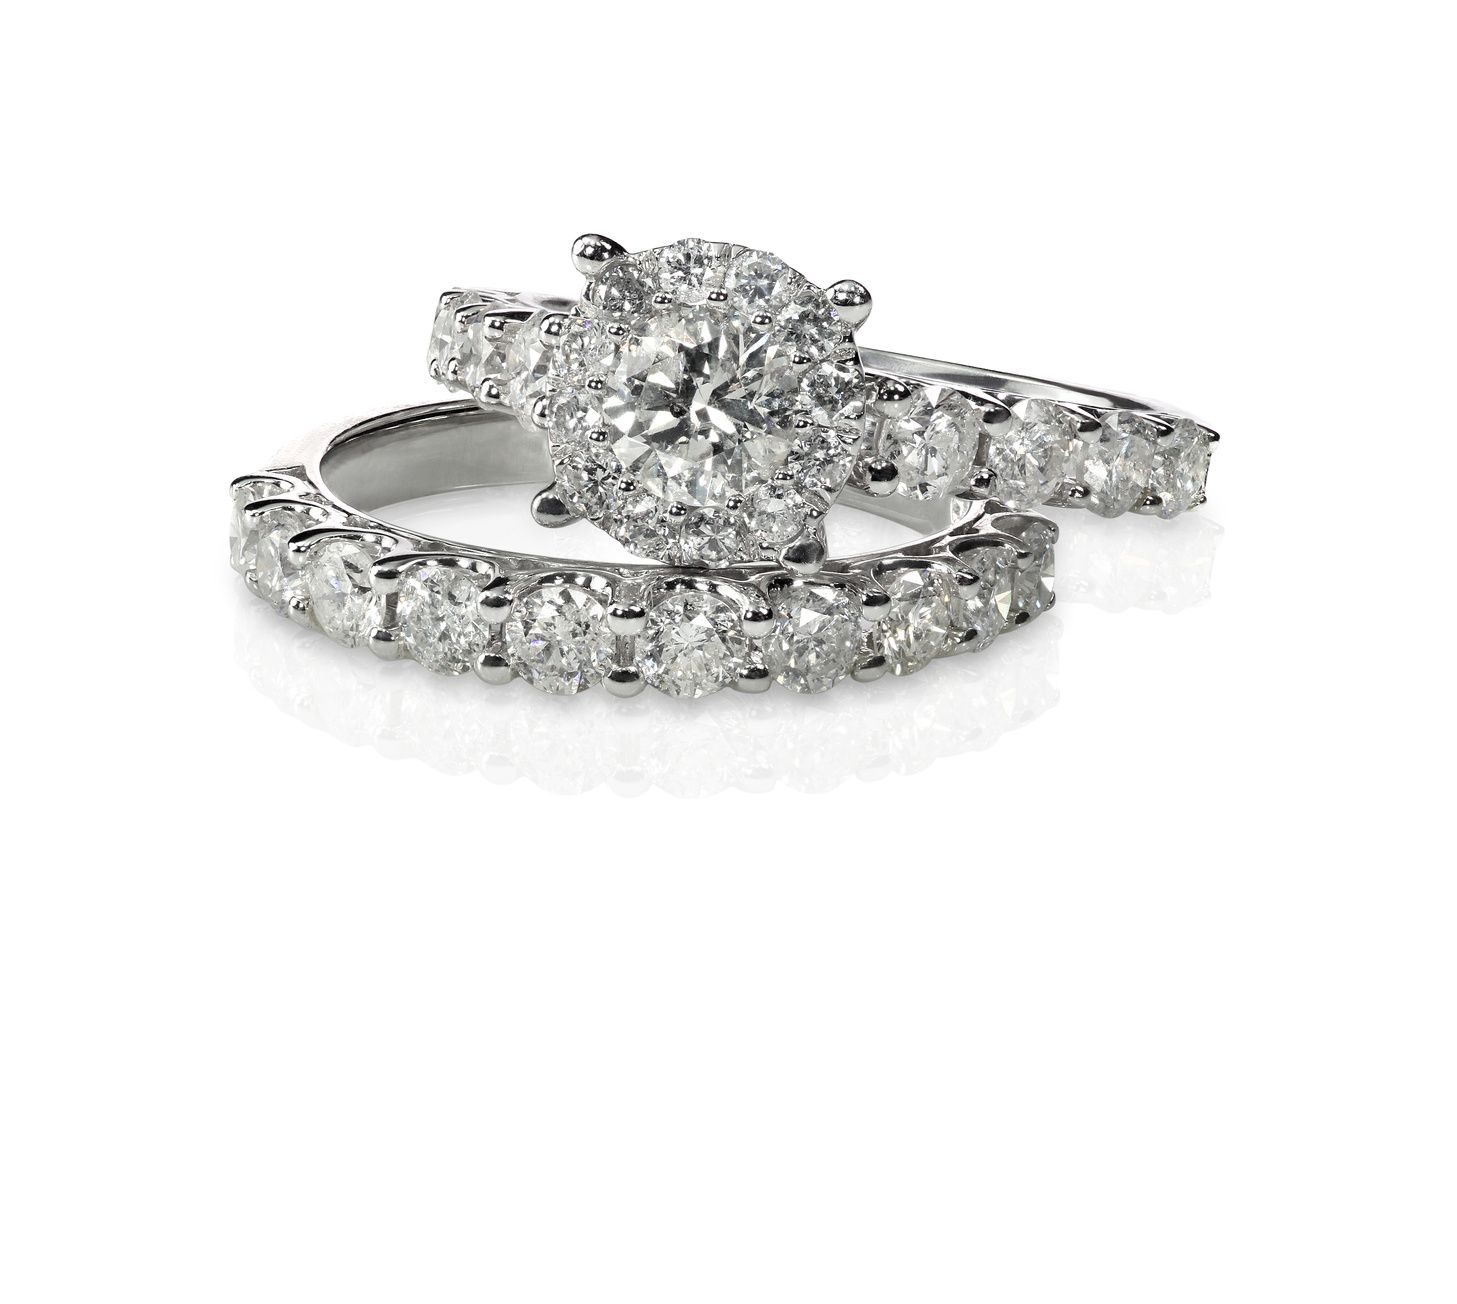 What You Need to Know About Getting A Ring Resized https